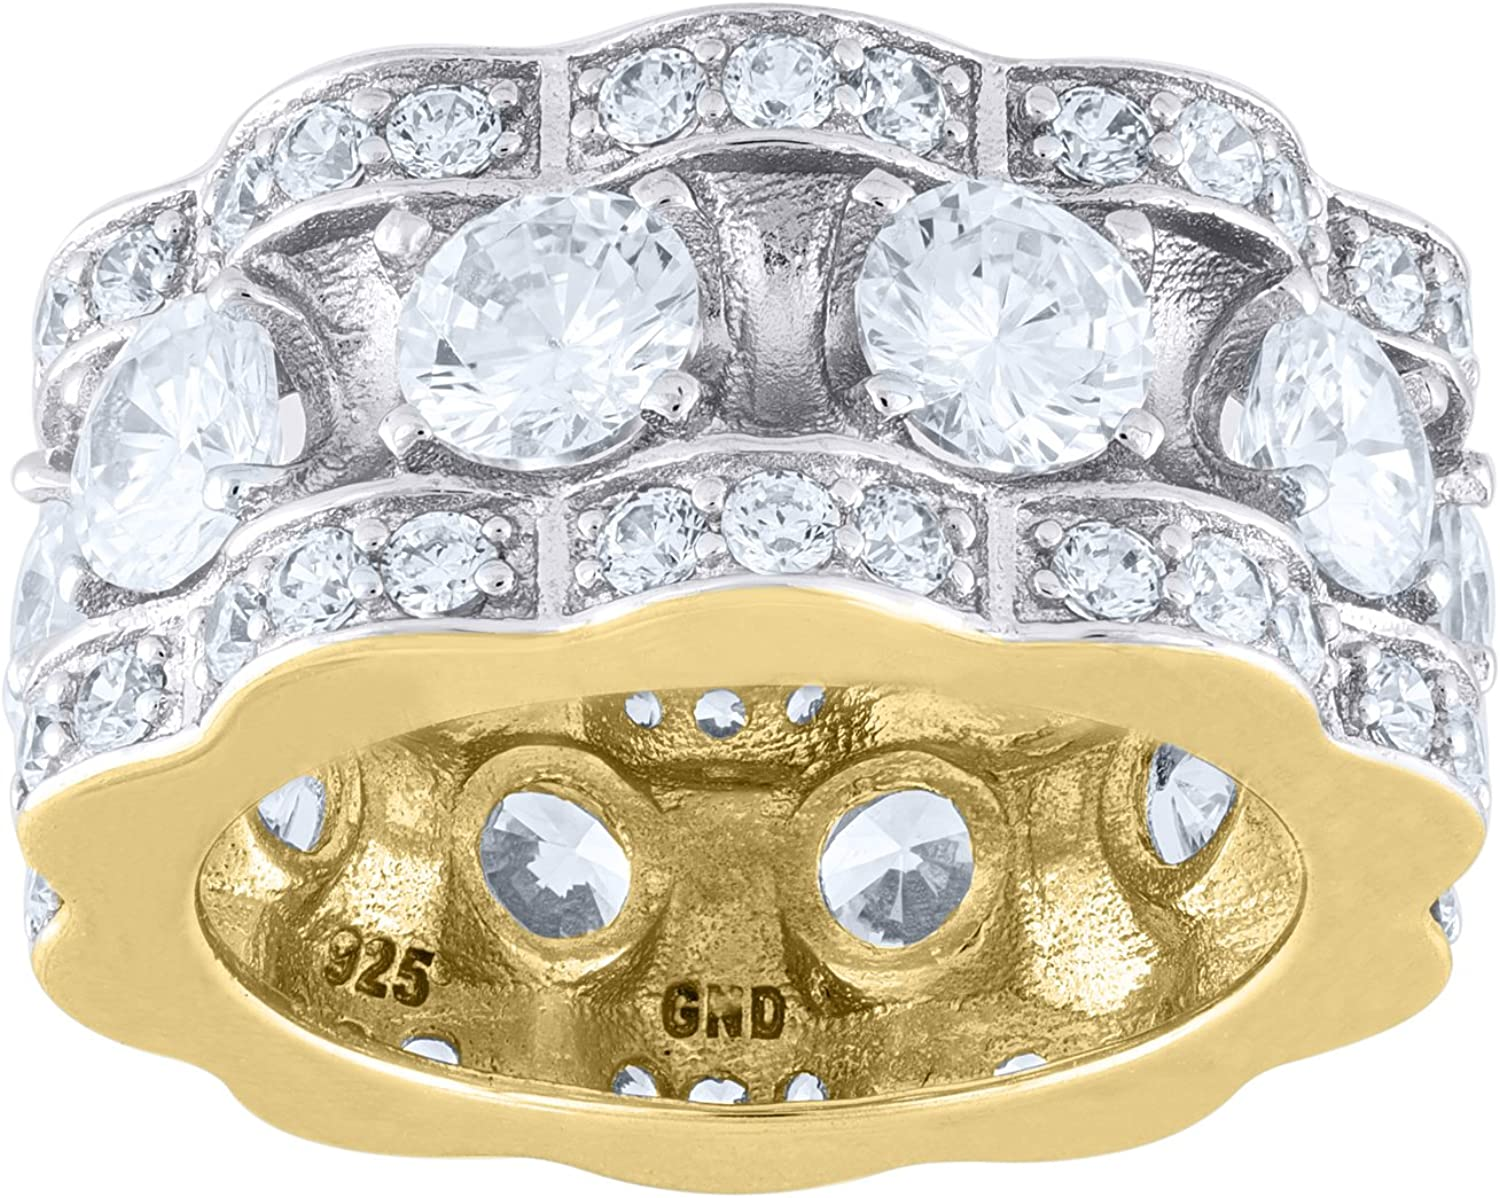 Jawa Jewelers Sterling Silver Mens Two-tone CZ Presidential SZ12-9.5mm Eternity Ring-SLV-88615